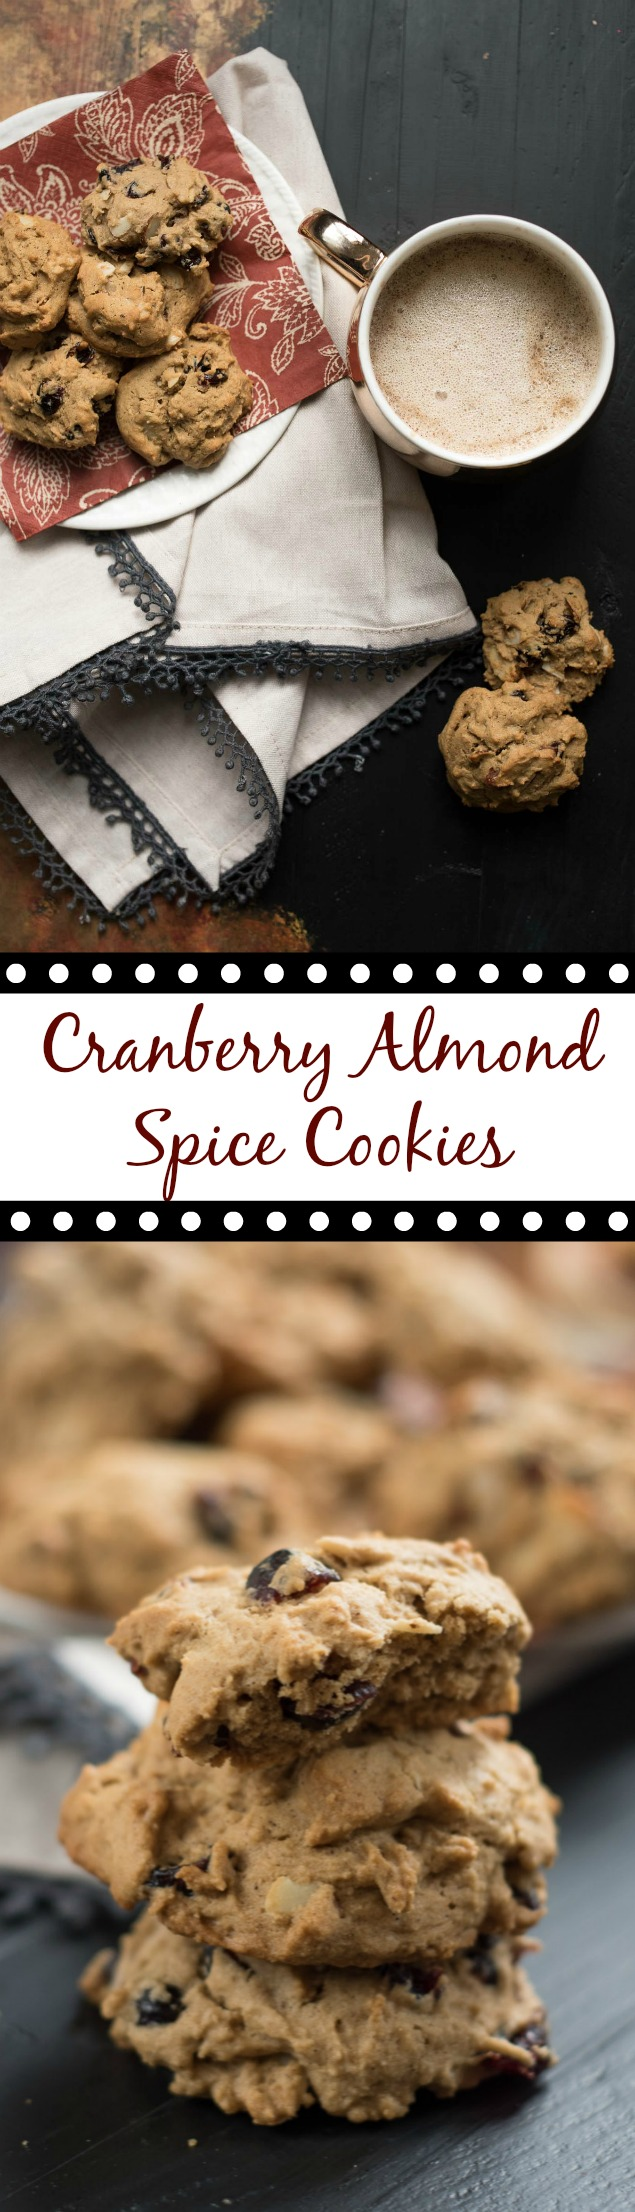 Cranberry Almond Spice Cookies- the perfect spiced cookie to dunk in your coffee. Not too sweet, but tons of flavor! #ad | www.nutritiouseats.com